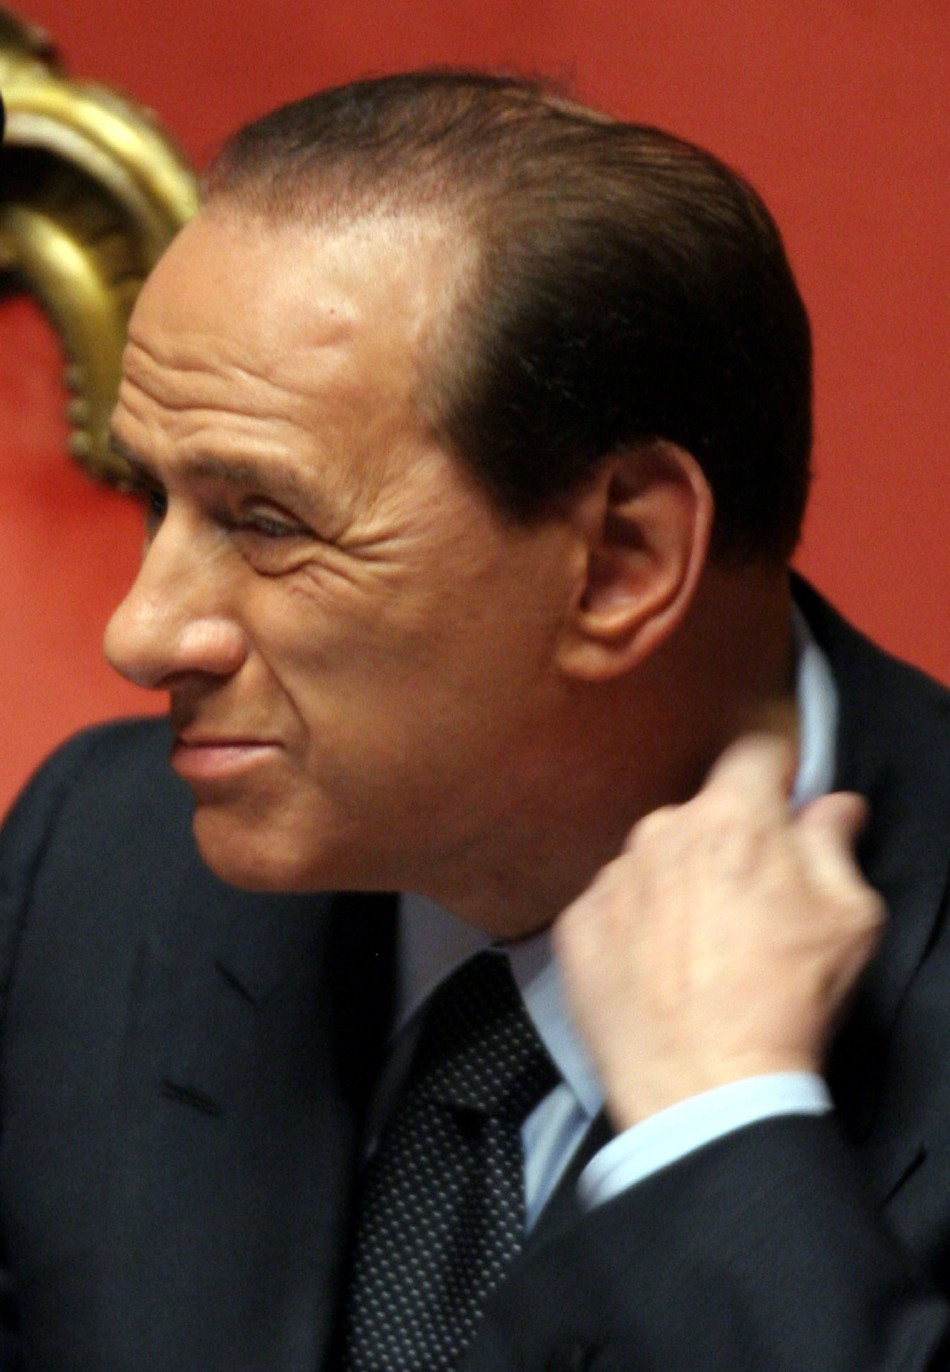 Italy's Prime Minister Silvio Berlusconi announces resignation in  2005